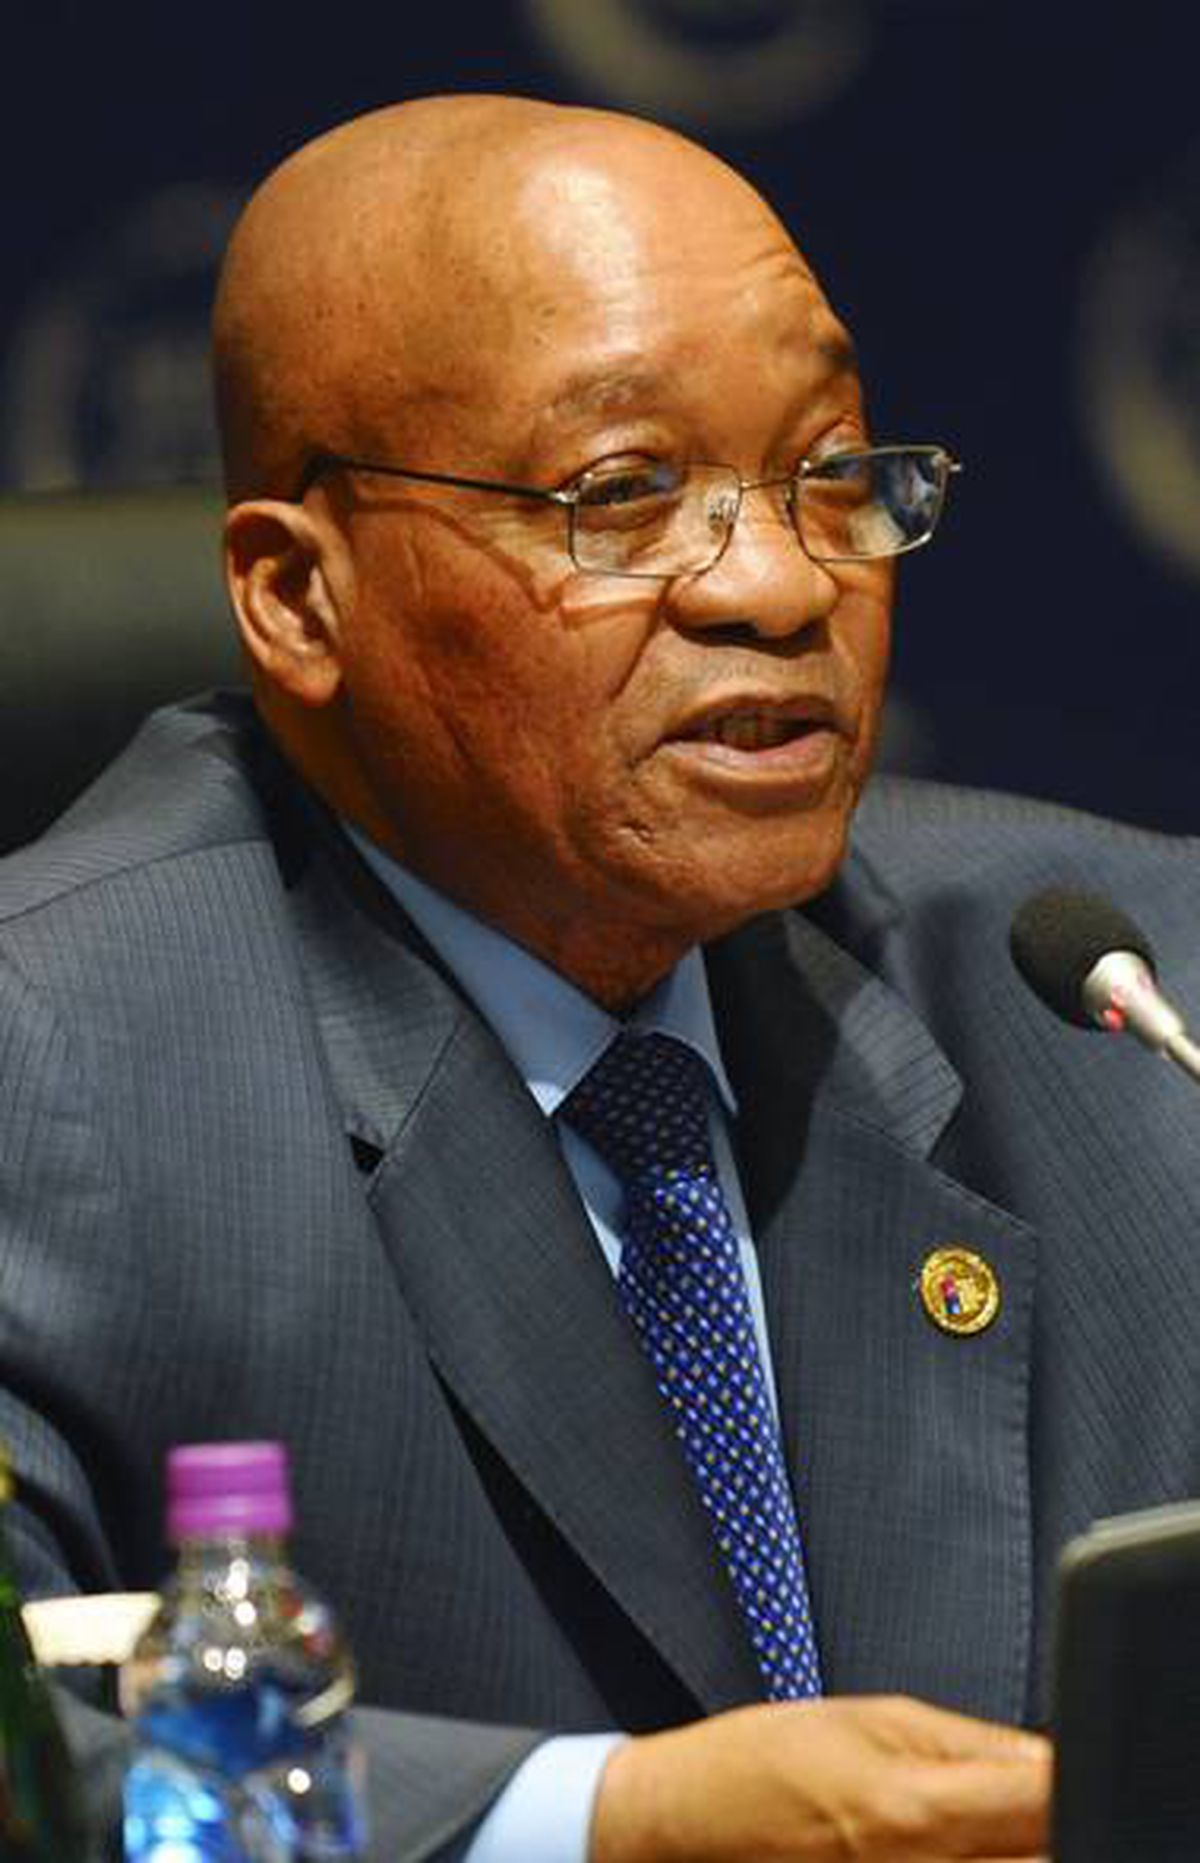 """SOUTH AFRICA: The rise of Jacob Zuma to South Africa's presidency was an """"astonishing"""" achievement, according to leaked U.S. diplomatic cables. Mr. Zuma became South African president in May, 2009, after a bruising battle for the leadership of the African National Congress with former president Thabo Mbeki, who was forced by the ruling party to step down in late 2008. """"Zuma's rise to the pinnacle of South African politics at the same time that serious questions about his character were headline news is an astonishing political achievement in itself,"""" said a diplomatic cable written before Mr. Zuma was sworn in as president. Mr. Zuma was the subject of a long corruption investigation. Graft charges against him were dropped in April, 2009."""